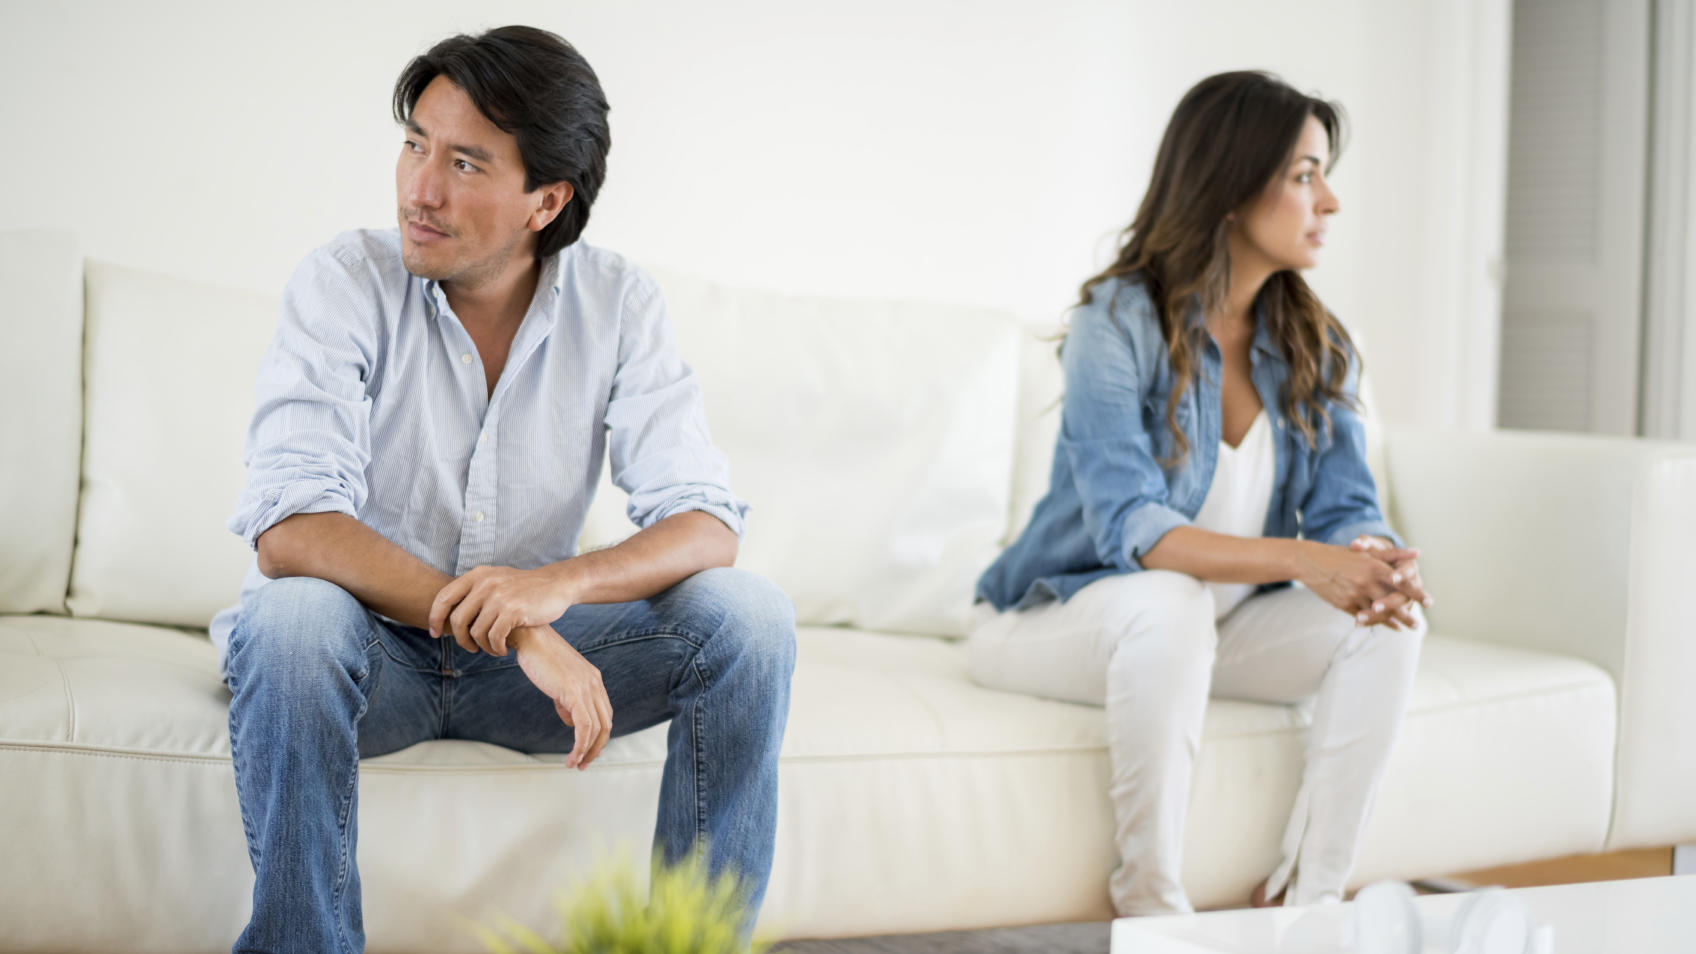 how to avoid conflicts in marriages in an islamic way